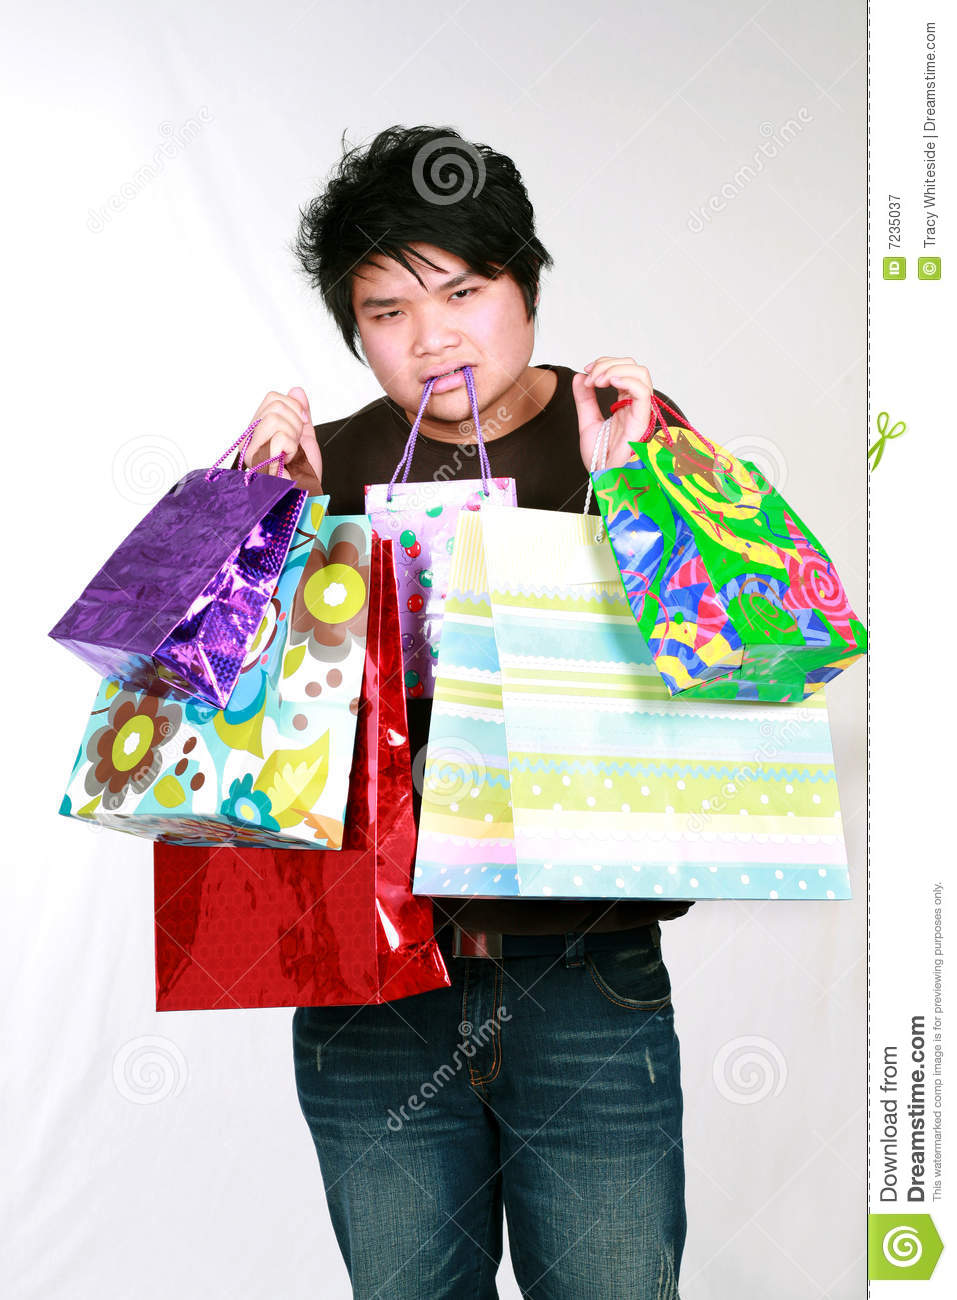 6f14bf42d Asian Teen Boy With Shopping Bags Stock Image - Image of copy ...